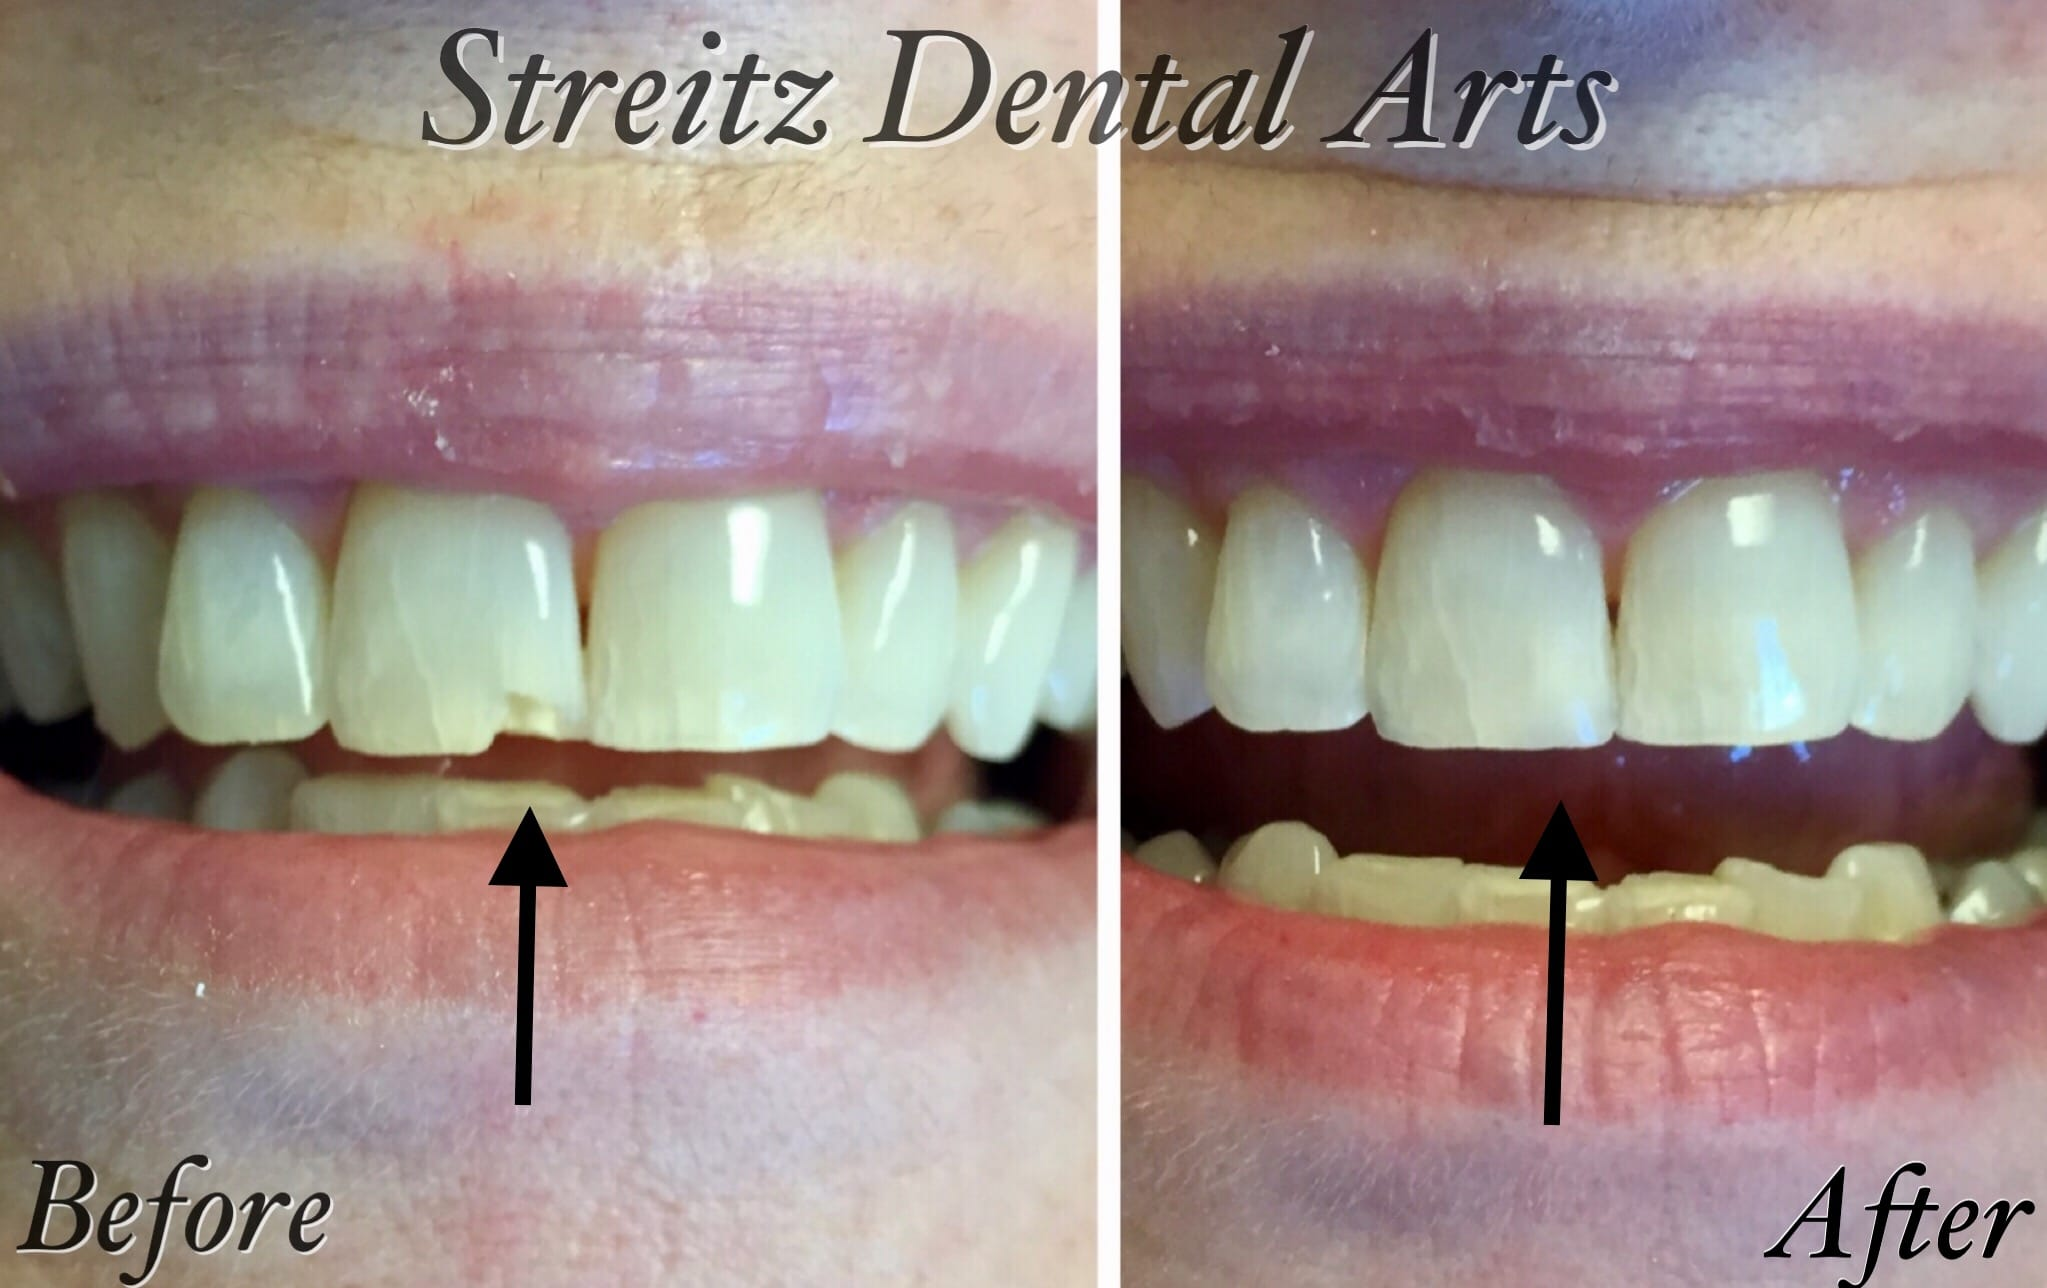 Before and After Photos of Dental Implants and Cosmetic